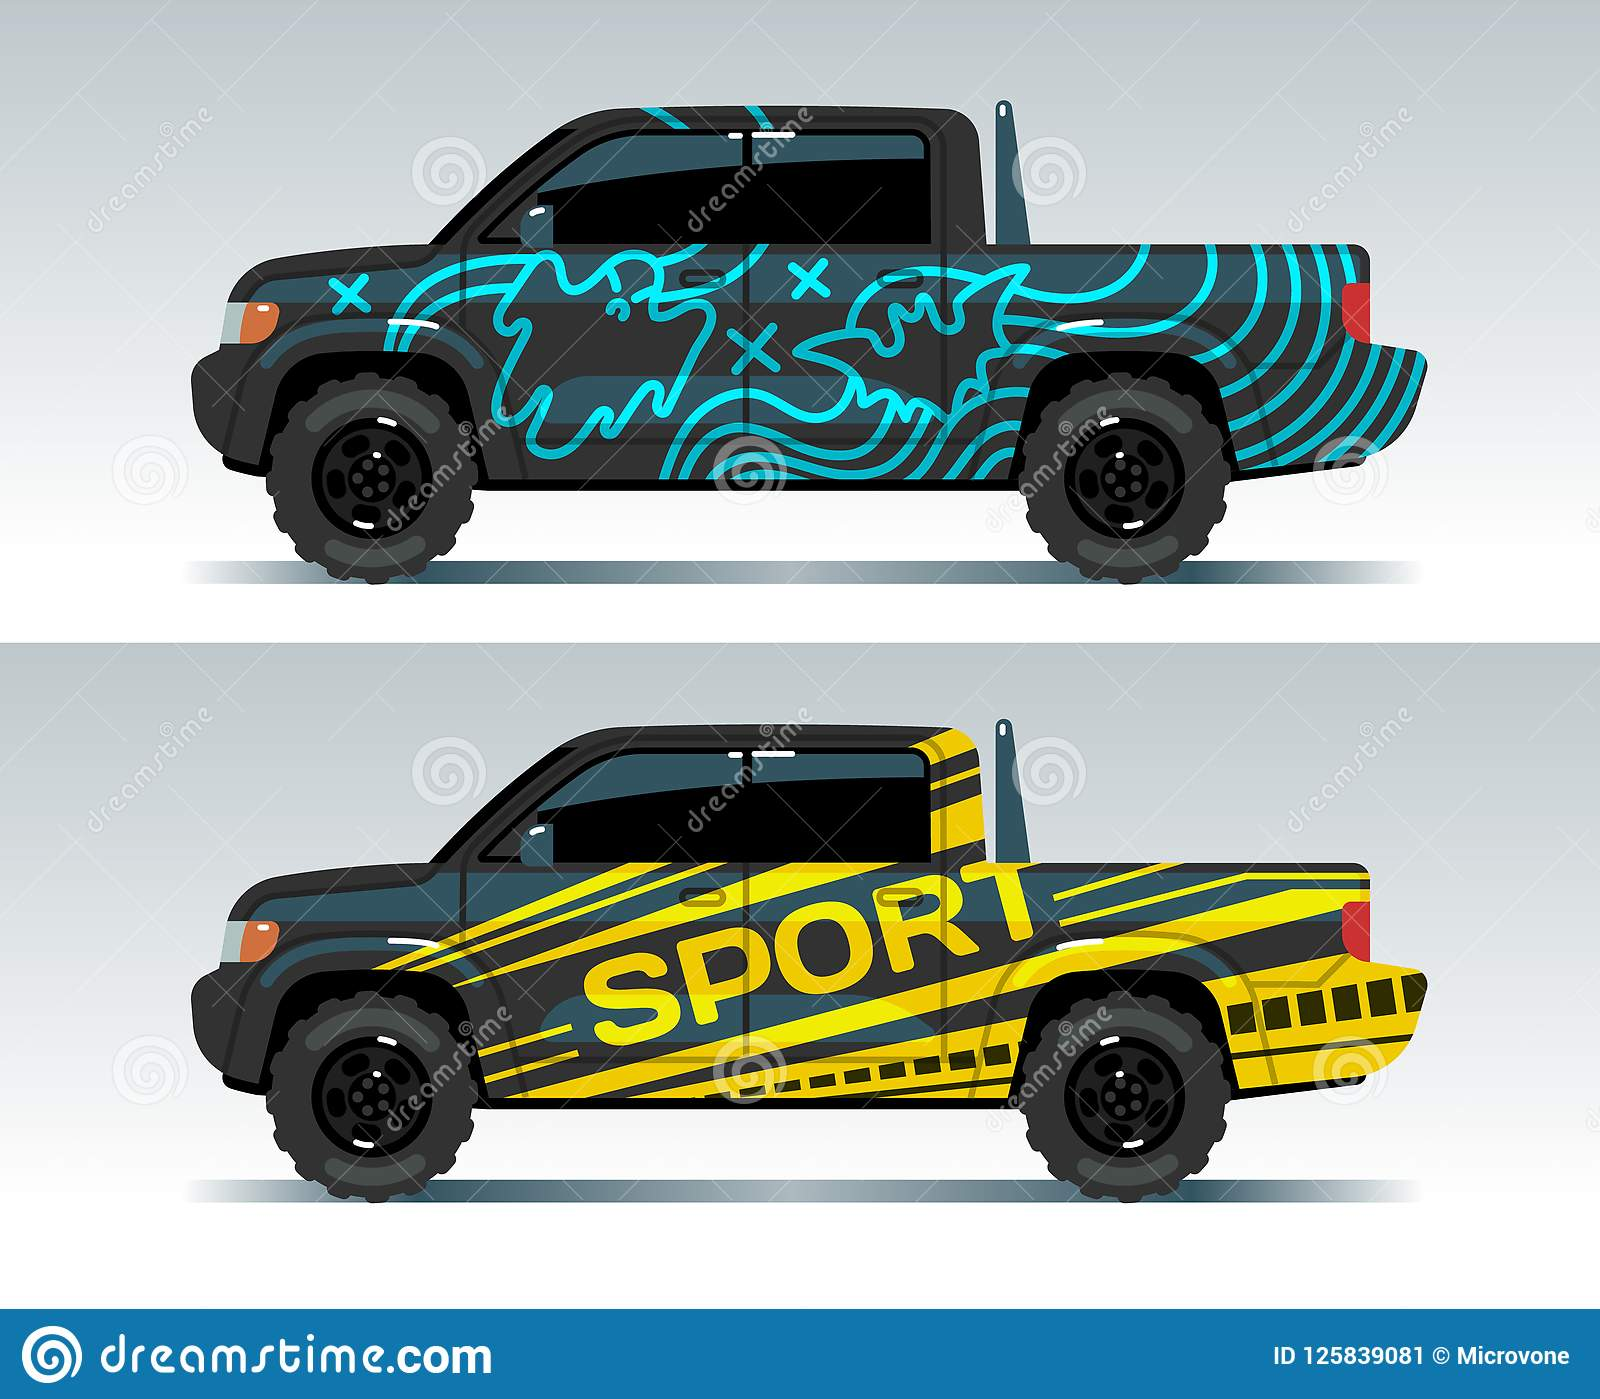 Racing Car Graphic Truck Wrapping Background Vehicle Branding Vector Design Stock Vector Illustration Of Pinstripe Racing 125839081